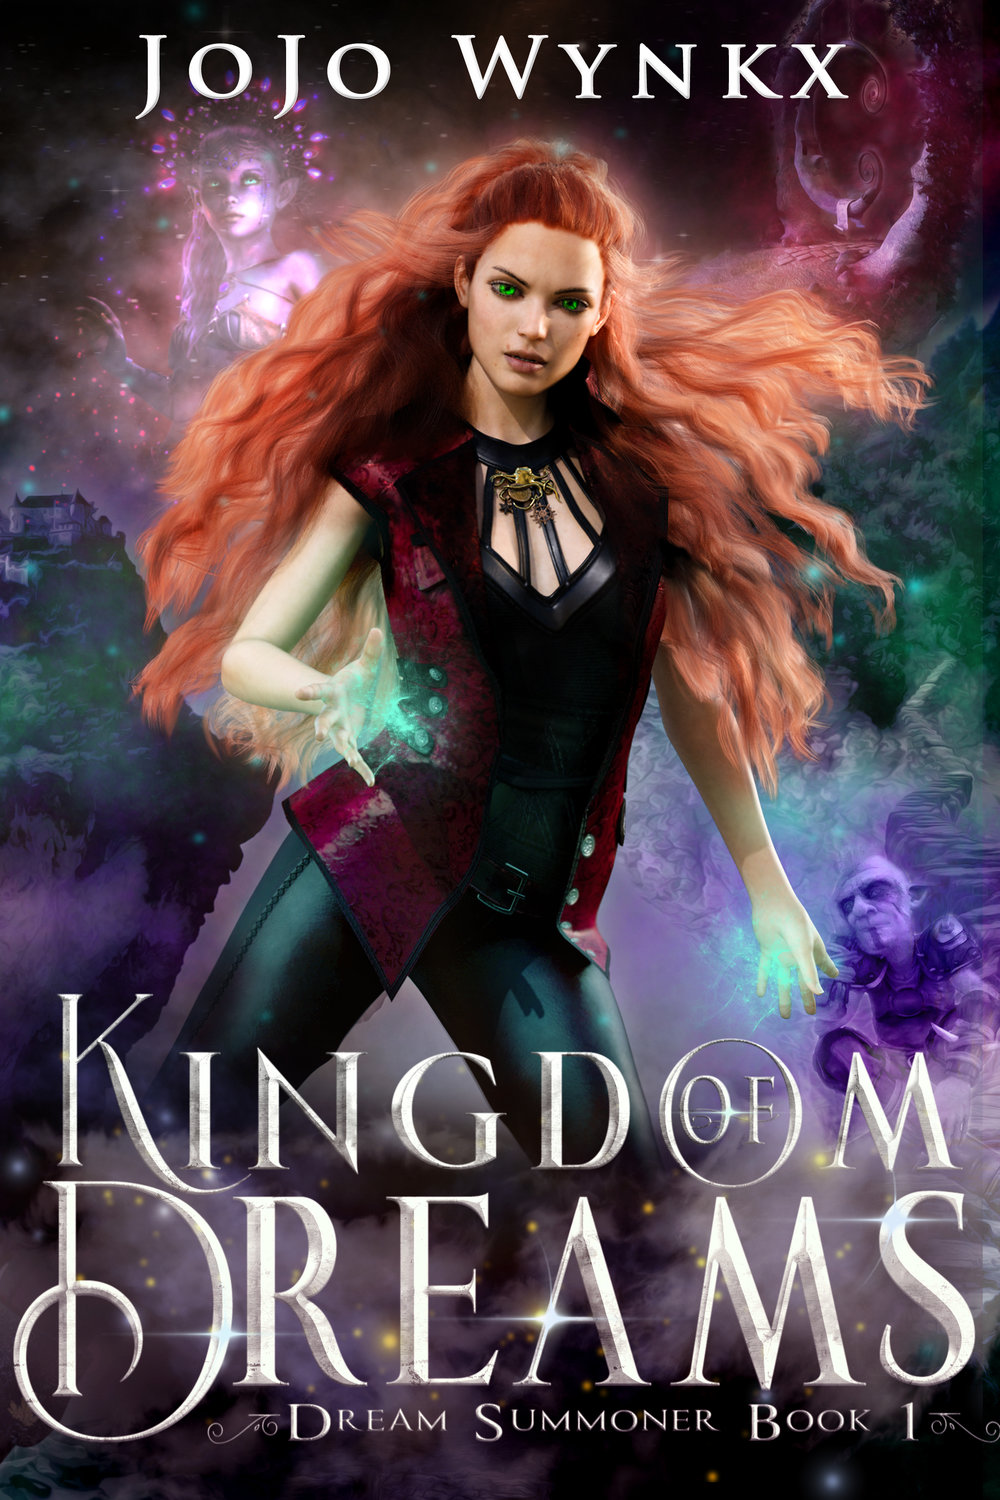 1.5e Kingdom of Dreams ebook.jpg